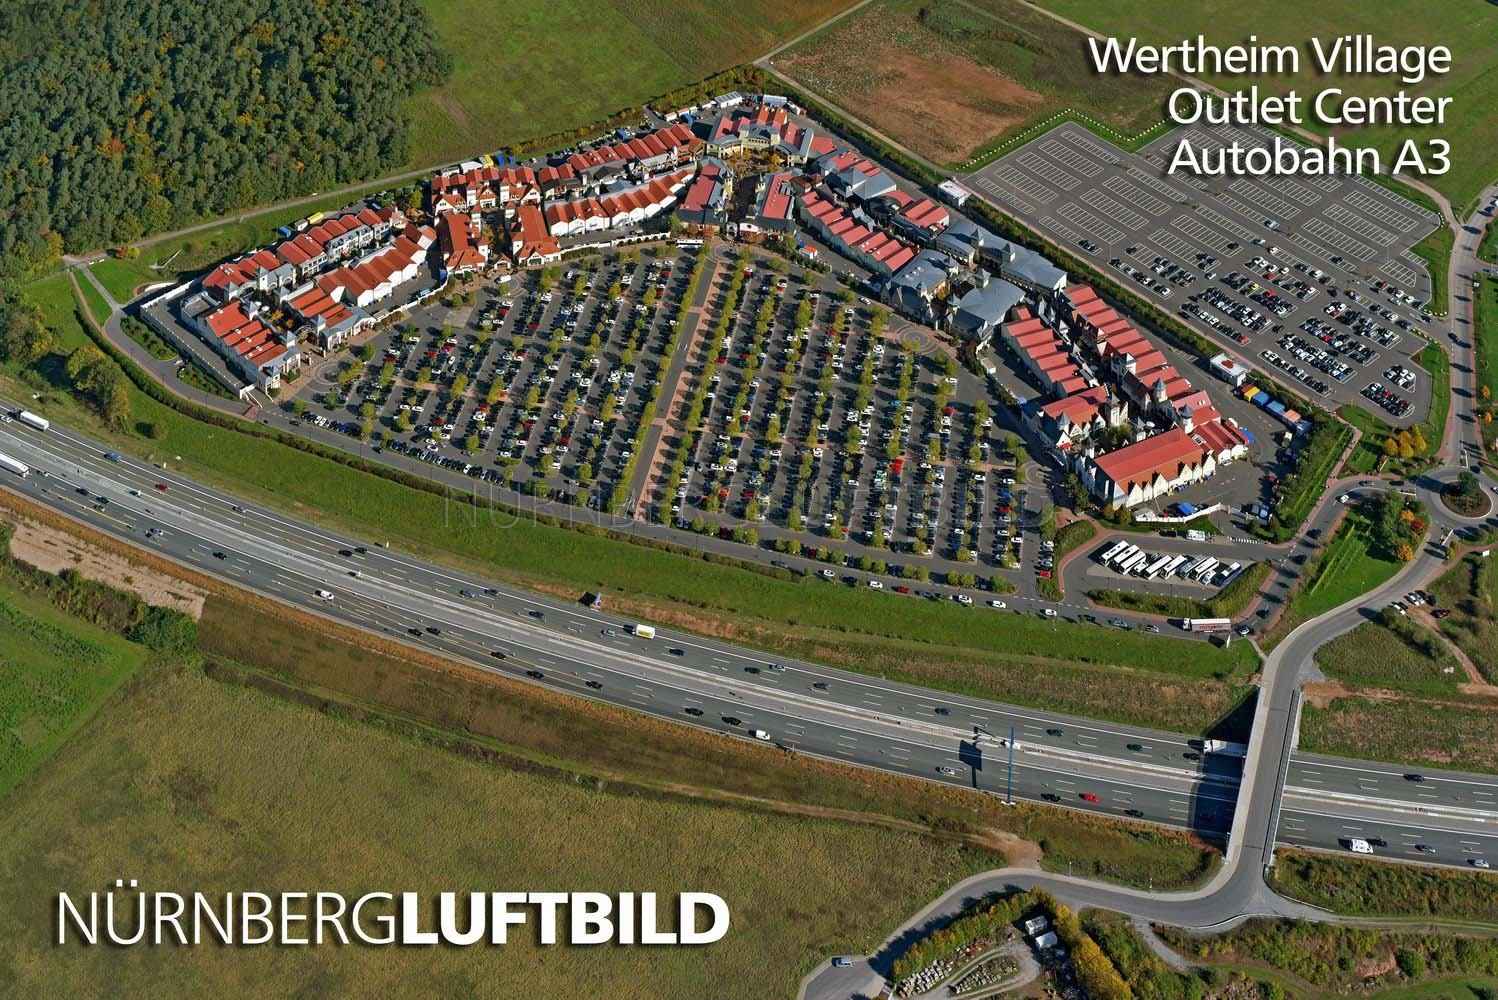 Wertheim bettingen autohof a3 things to bet on for superbowl 2021